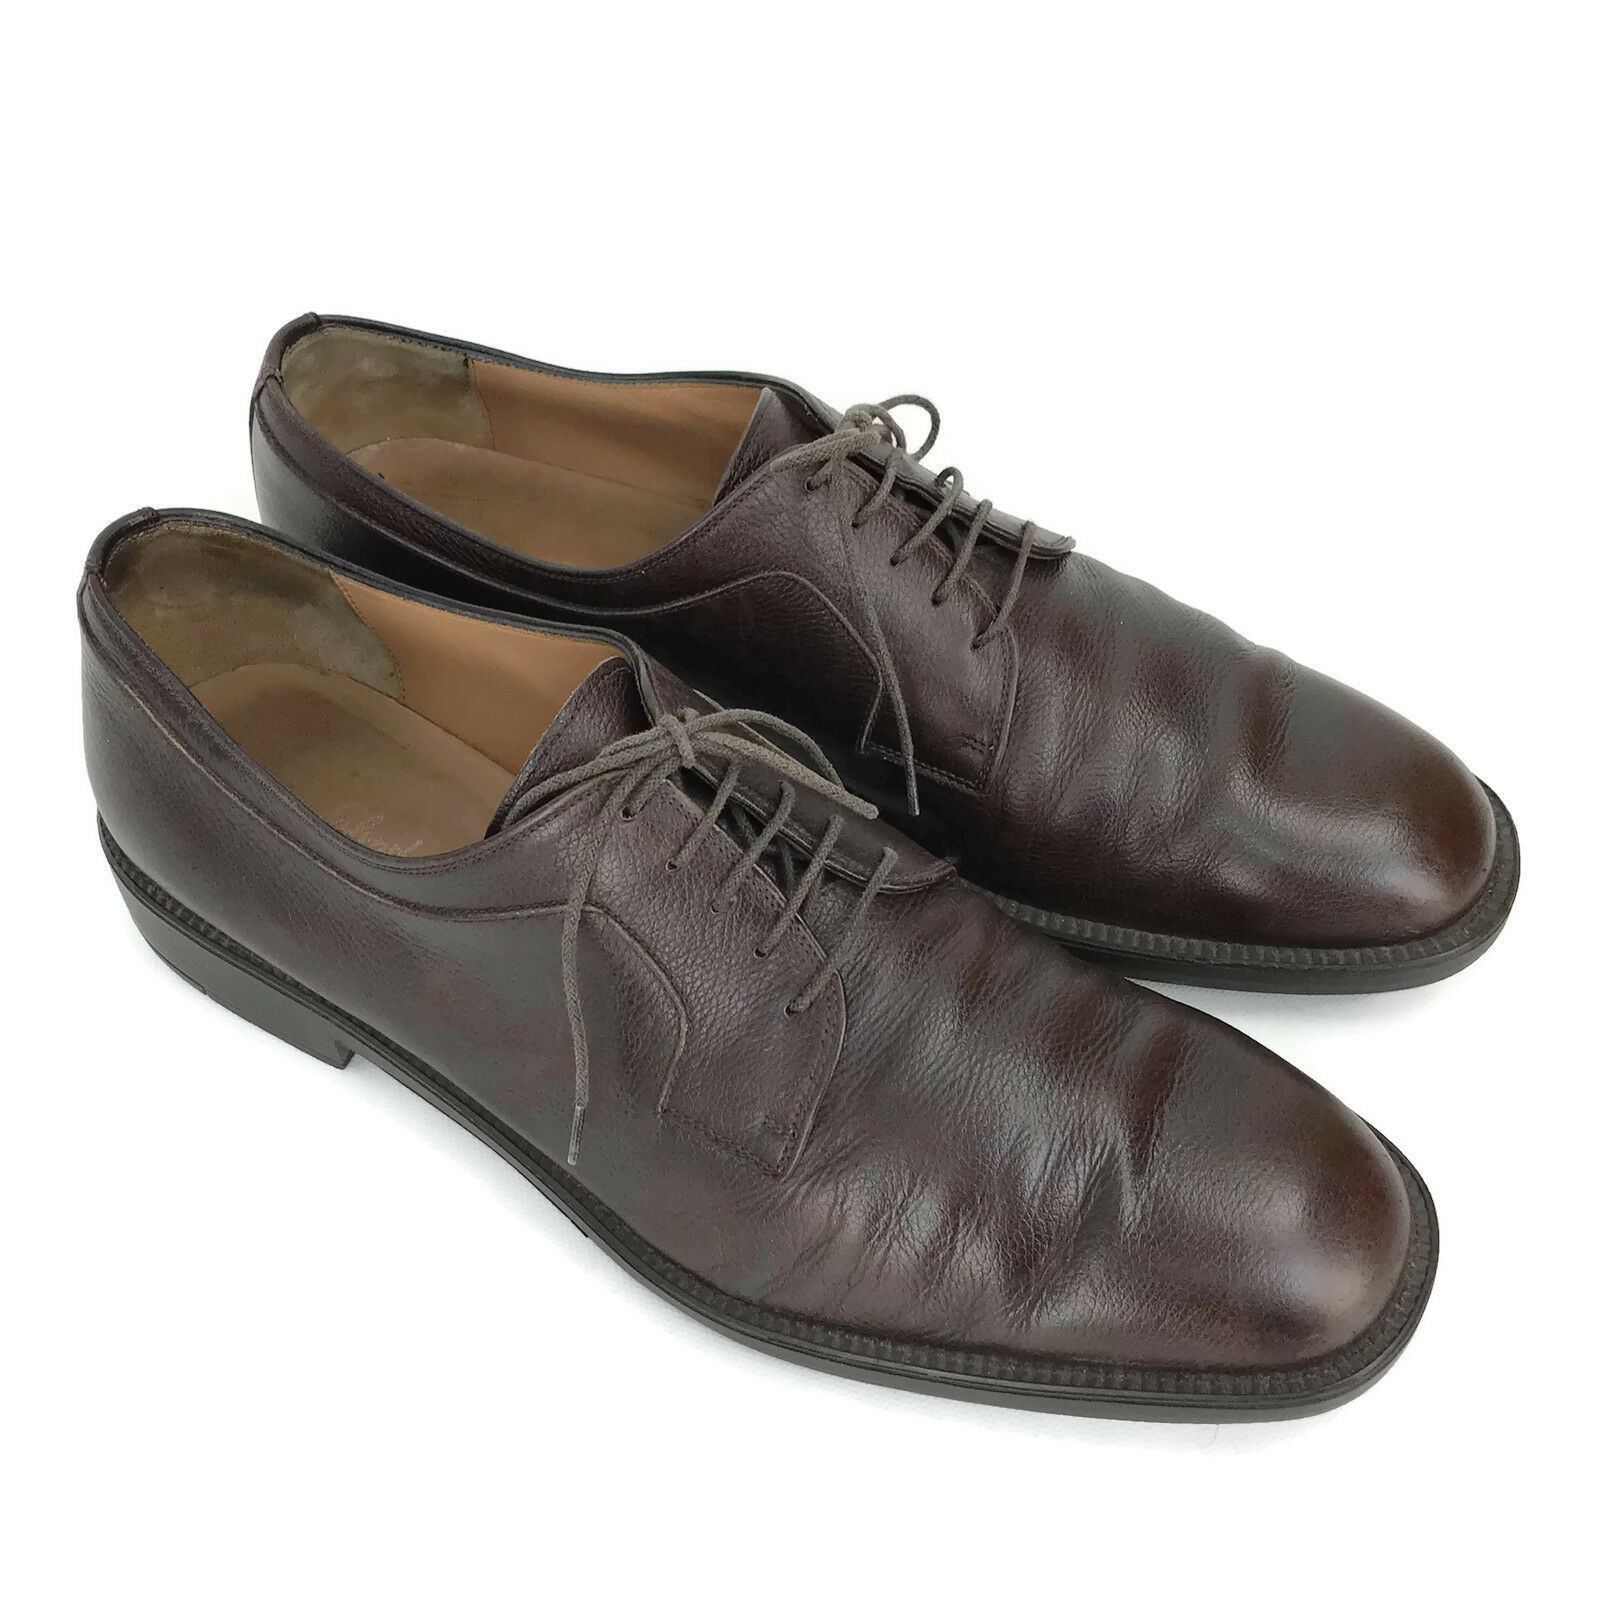 Primary image for Salvatore Ferragamo Men's Brown Pebbled Leather Lace Up Oxfords Size 10.5 D